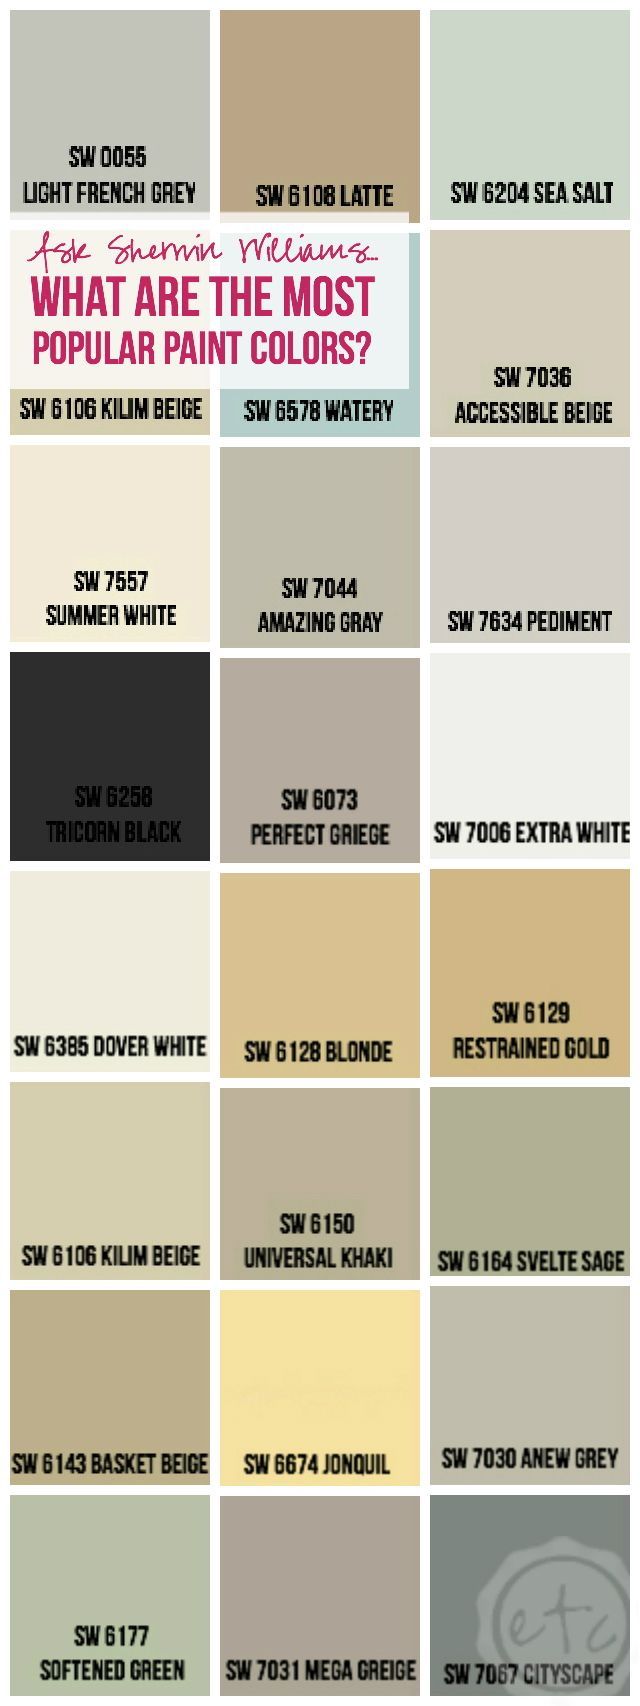 Ask Sherwin Williams... What Are The Most Popular Paint Colors